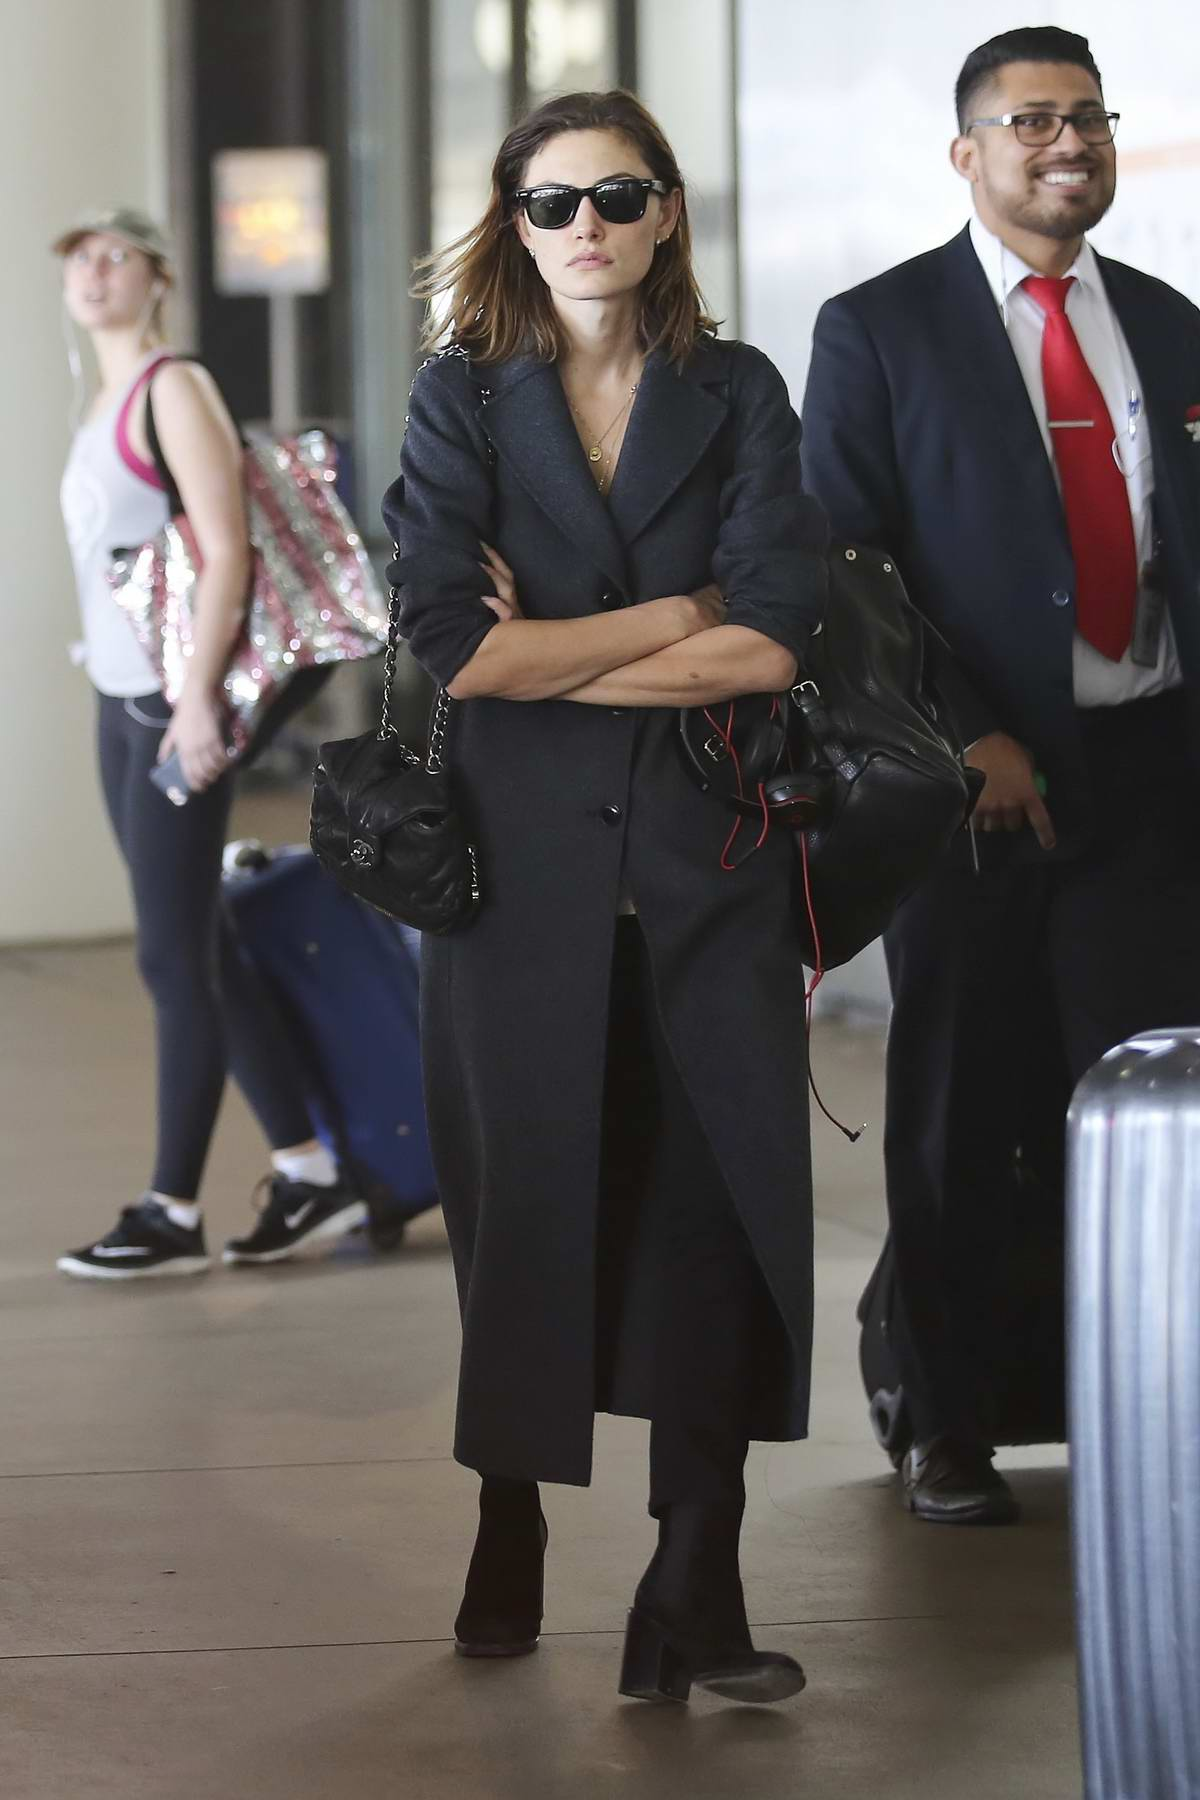 Phoebe Tonkin and her new boyfriend are seen leaving LAX airport in Los Angeles